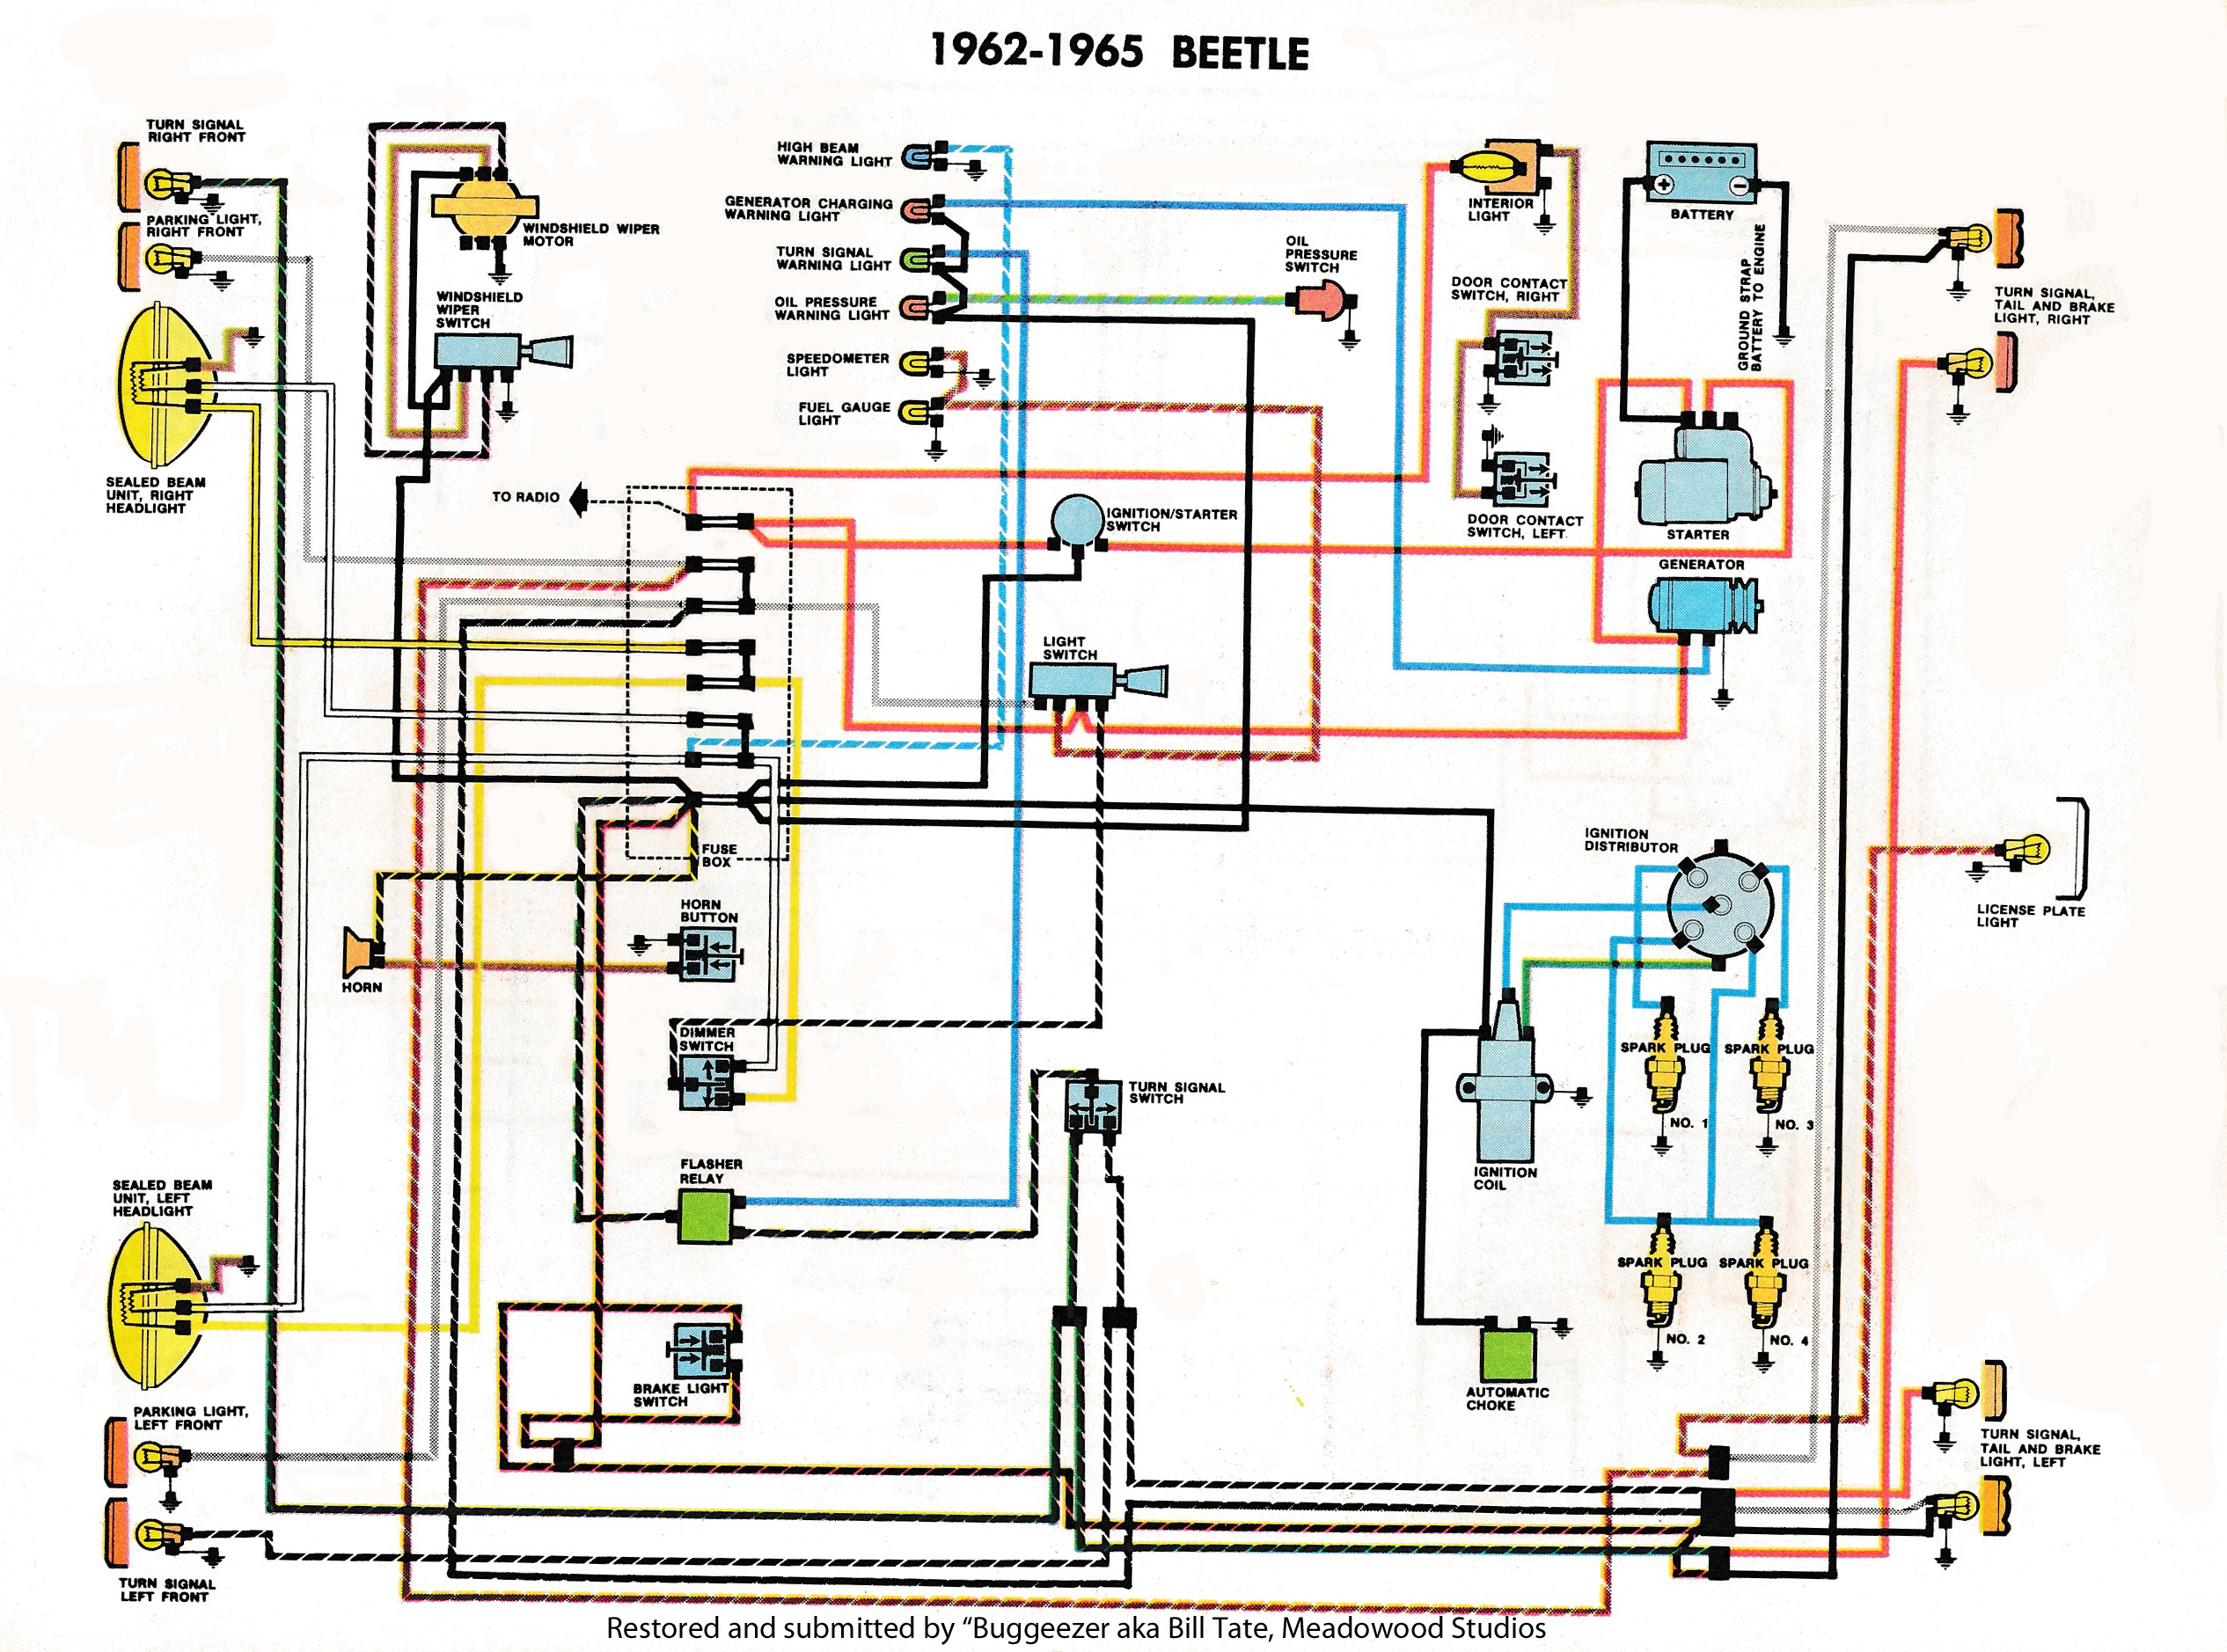 71 Super Beetle Wiring Diagram Schematics Diagrams Basic Electrical Get Free Image About Thesamba Com Type 1 Rh 73 Vw